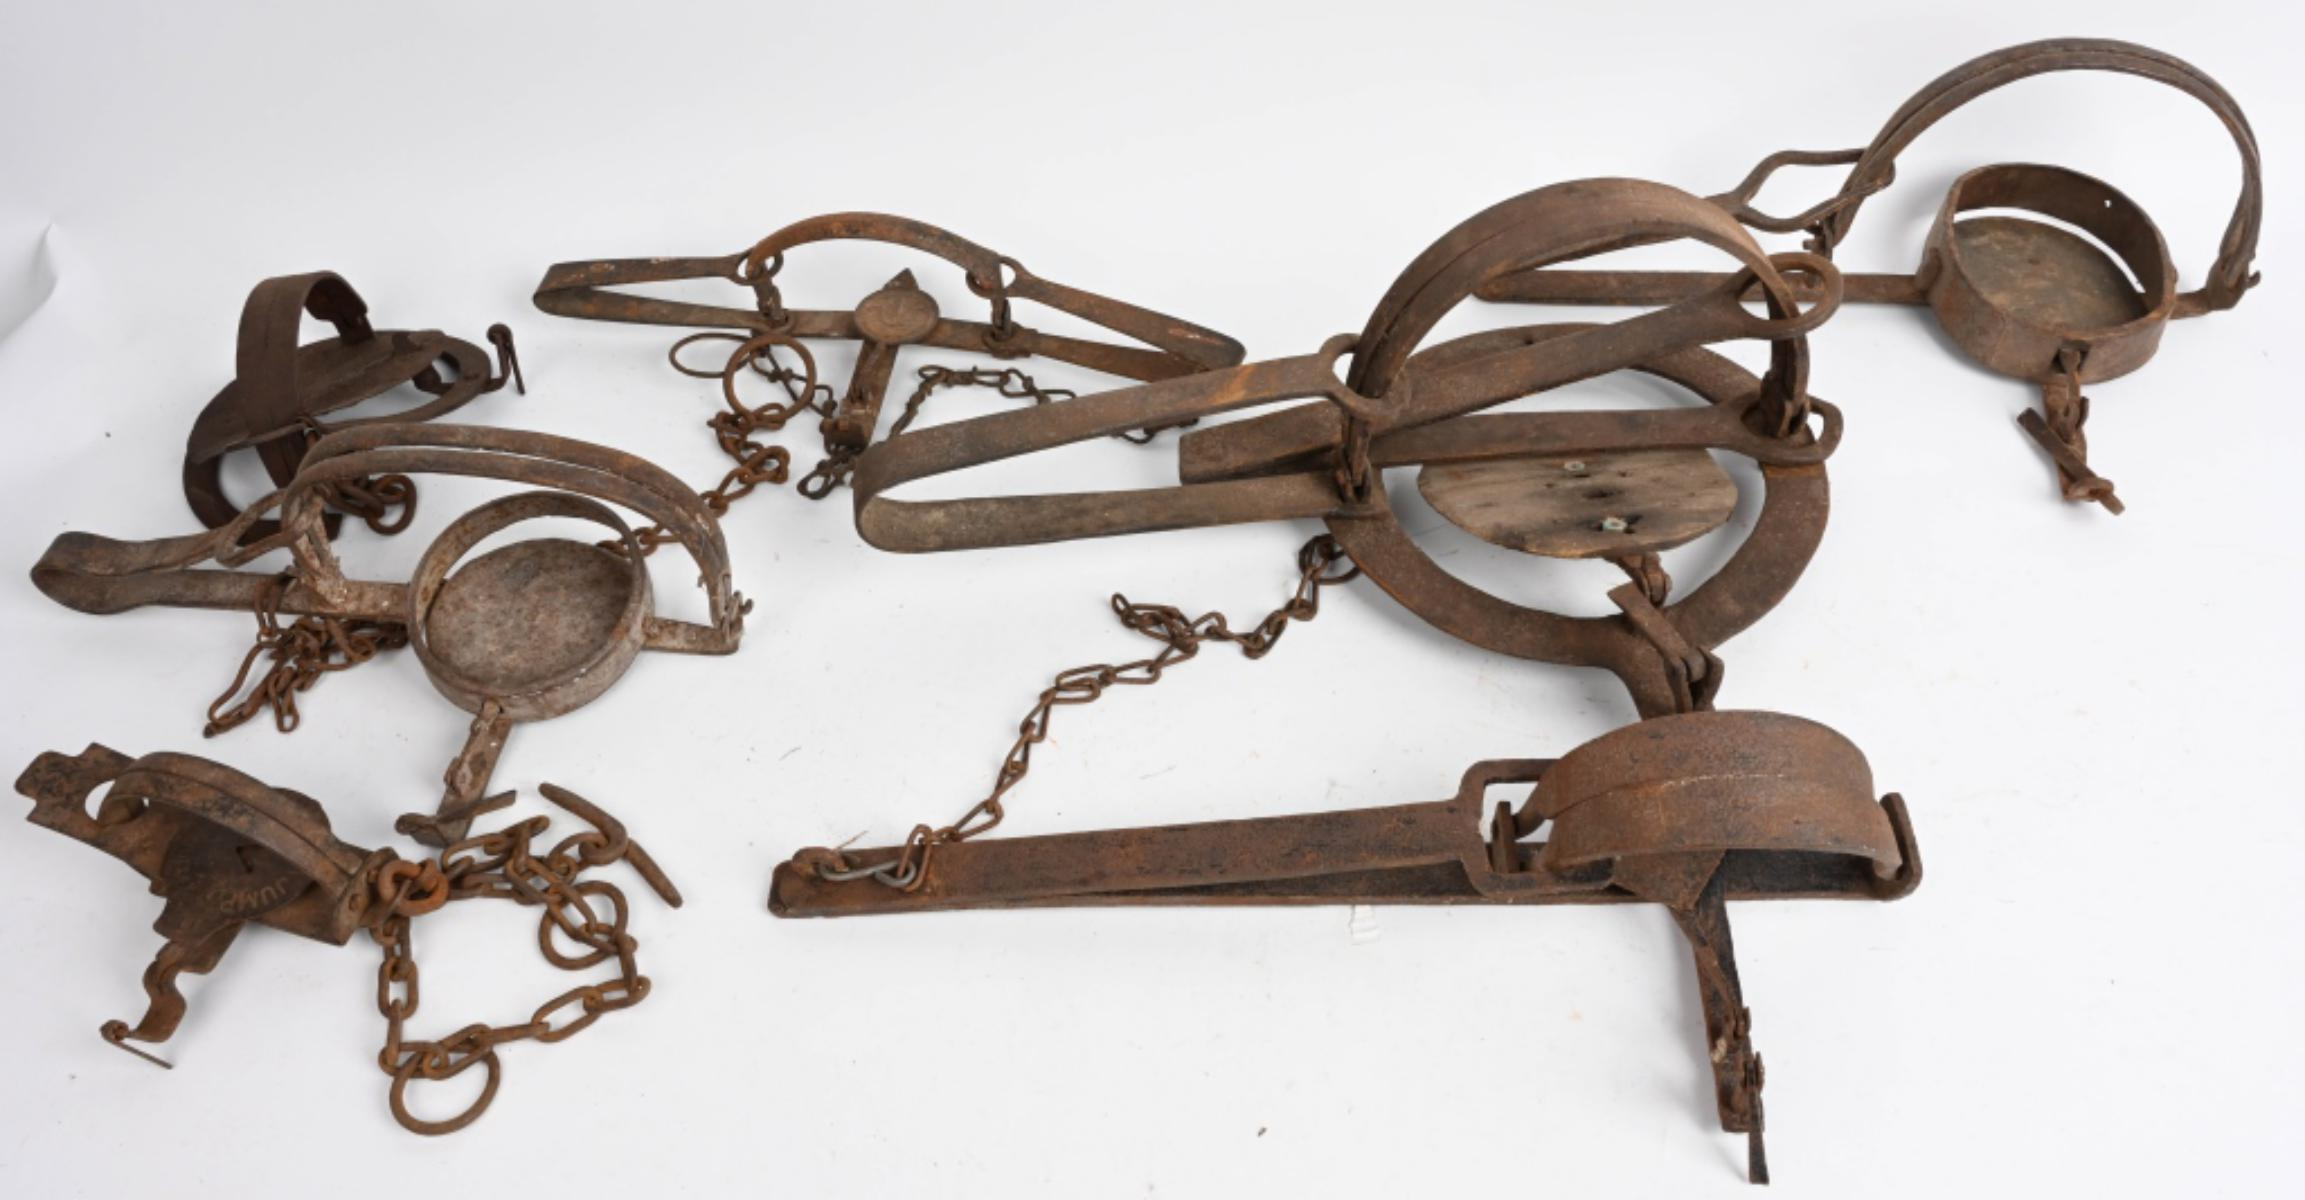 Several old animal traps on display.